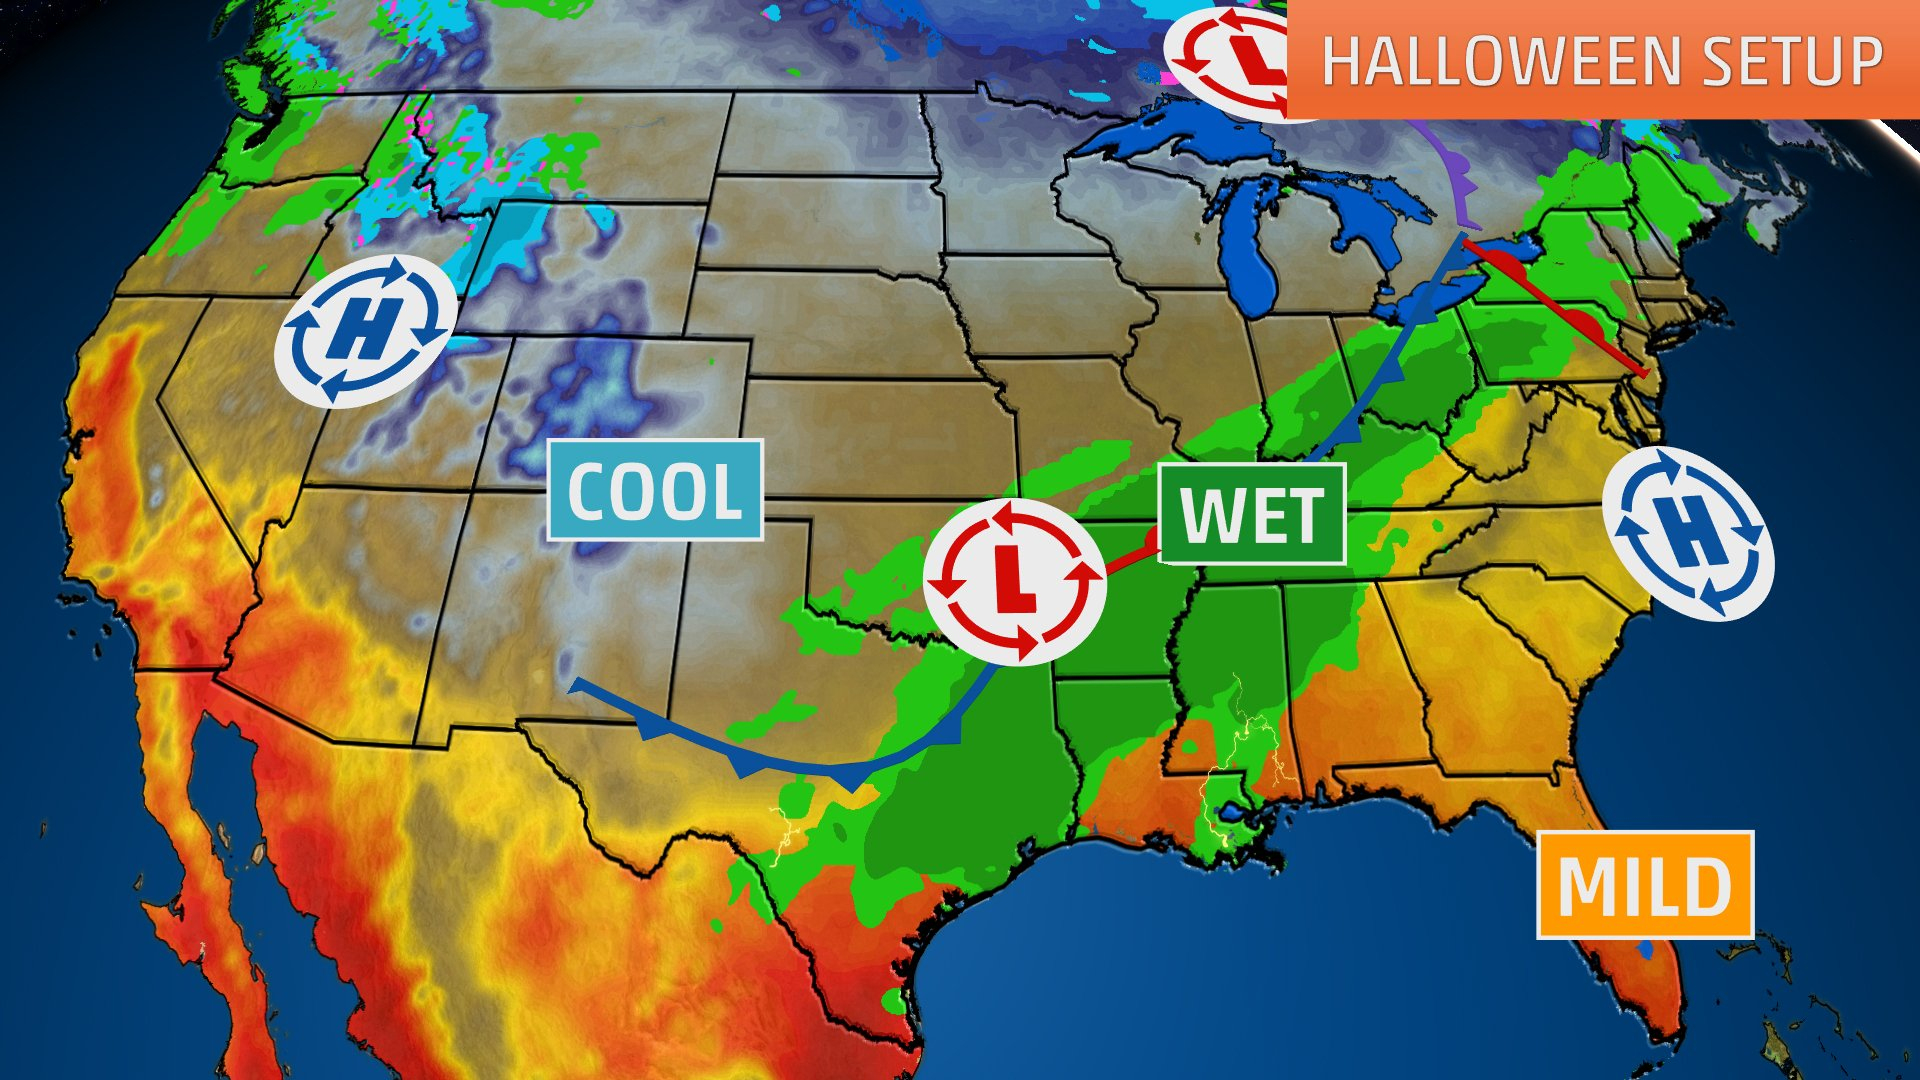 Halloween Weather Forecast: Wet Conditions From Texas To Ohio Valley - Texas Weather Radar Maps Motion